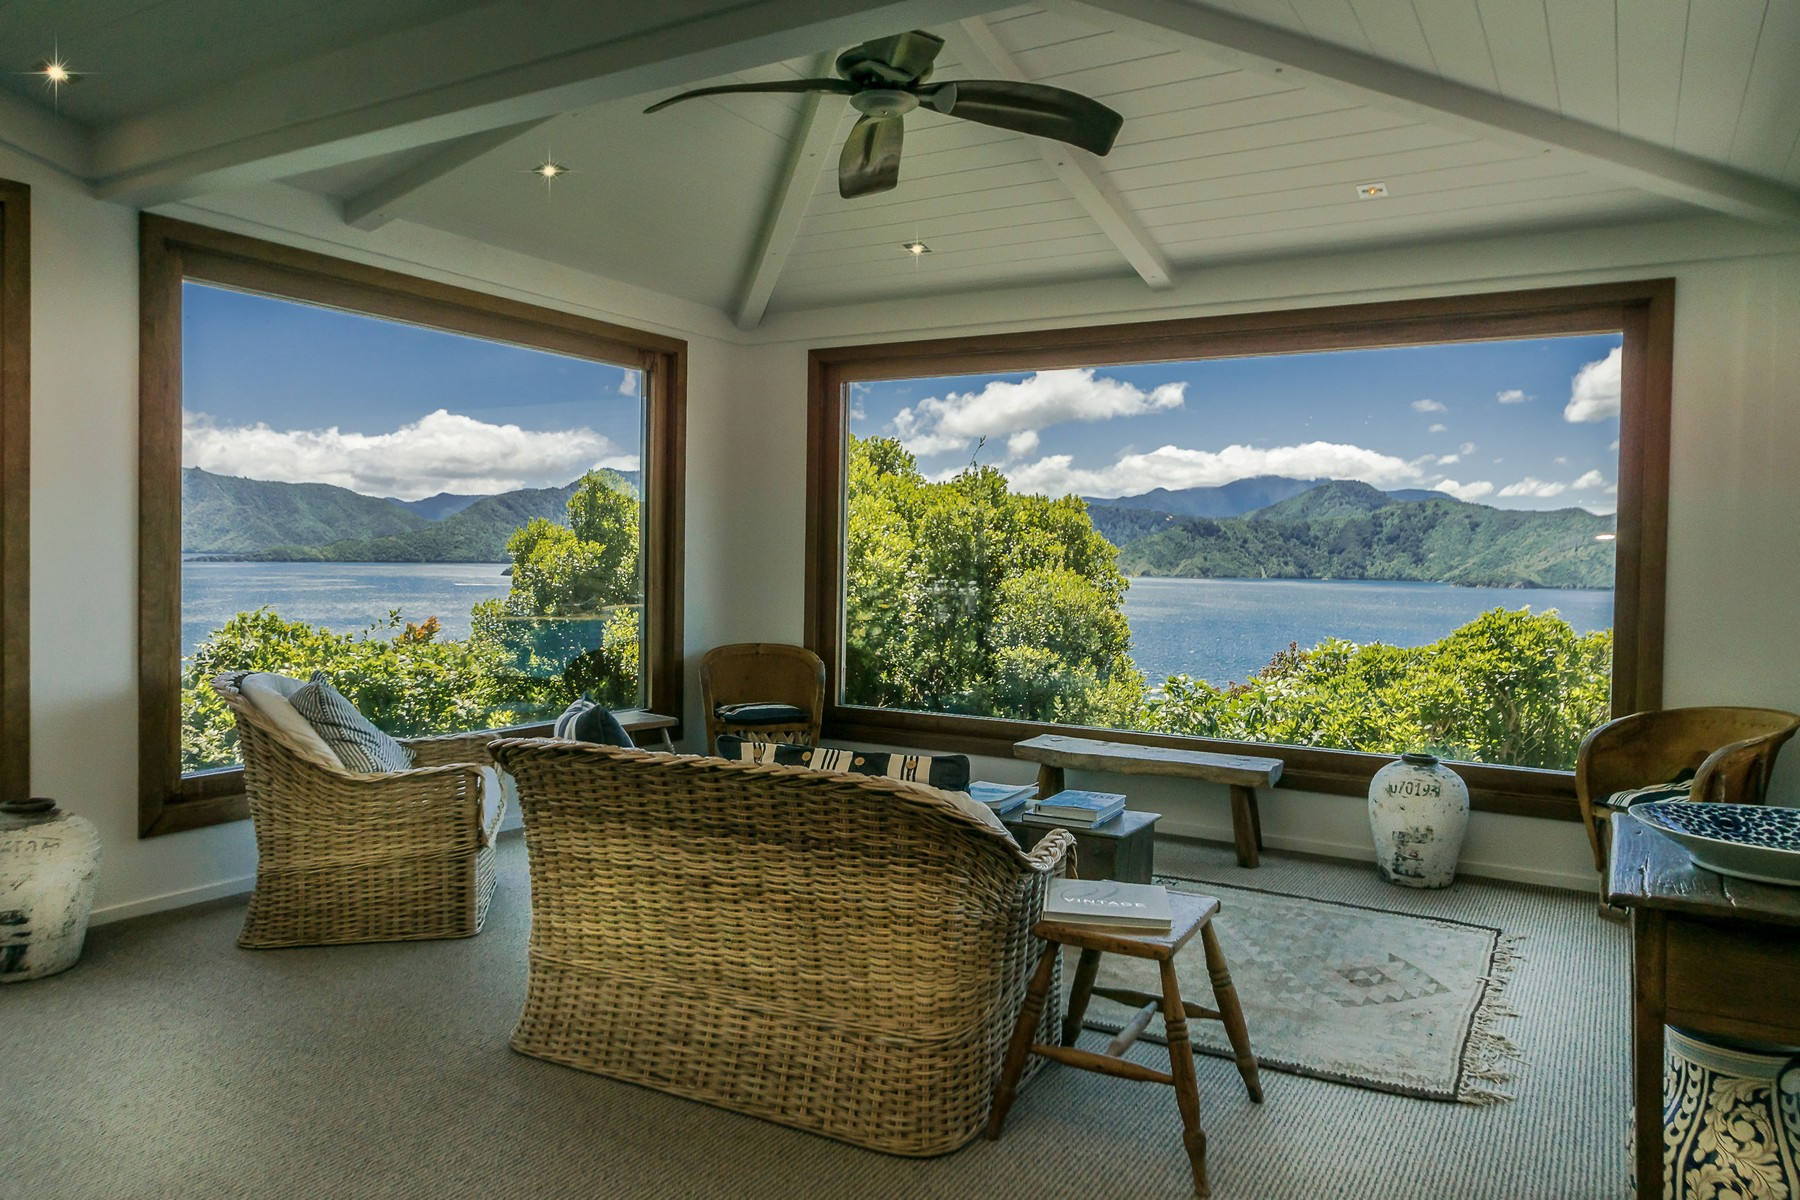 용 매매 에 Karaka Point 300 Port Underwood Road Queen Charlotte Sound Marlborough Sounds, 말버러, 7281 뉴질랜드